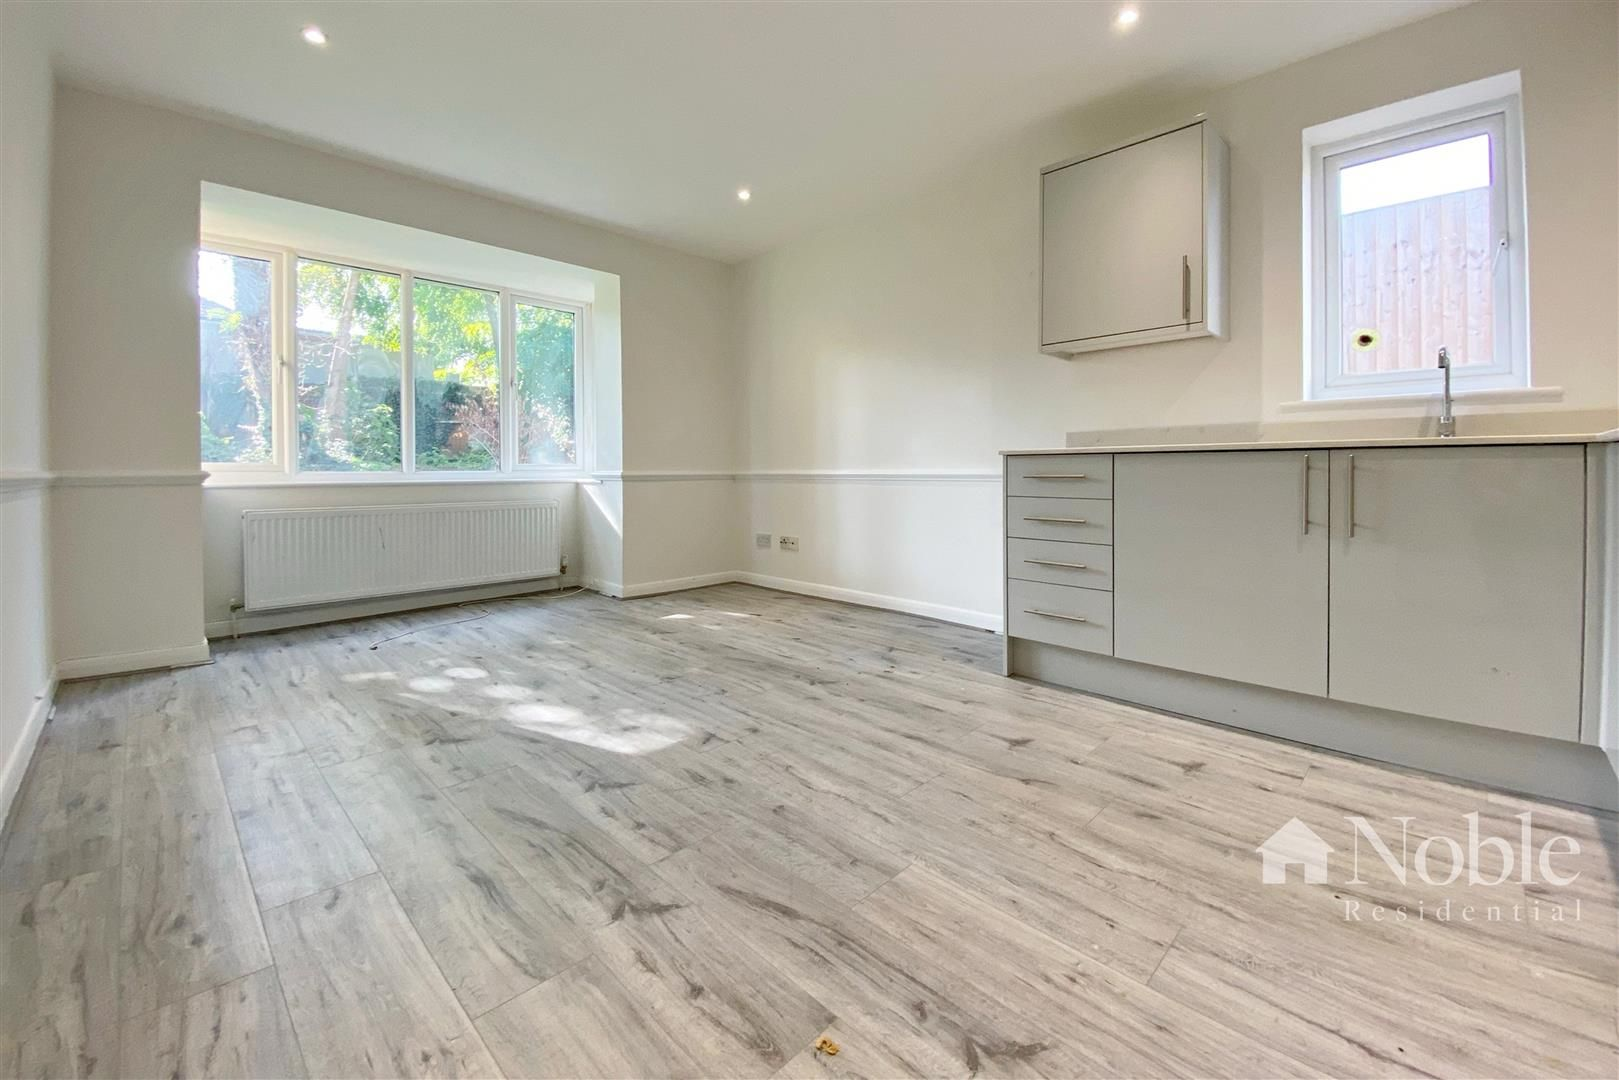 Property photo 1 of 8. Open Plan Living/Kitchen Area